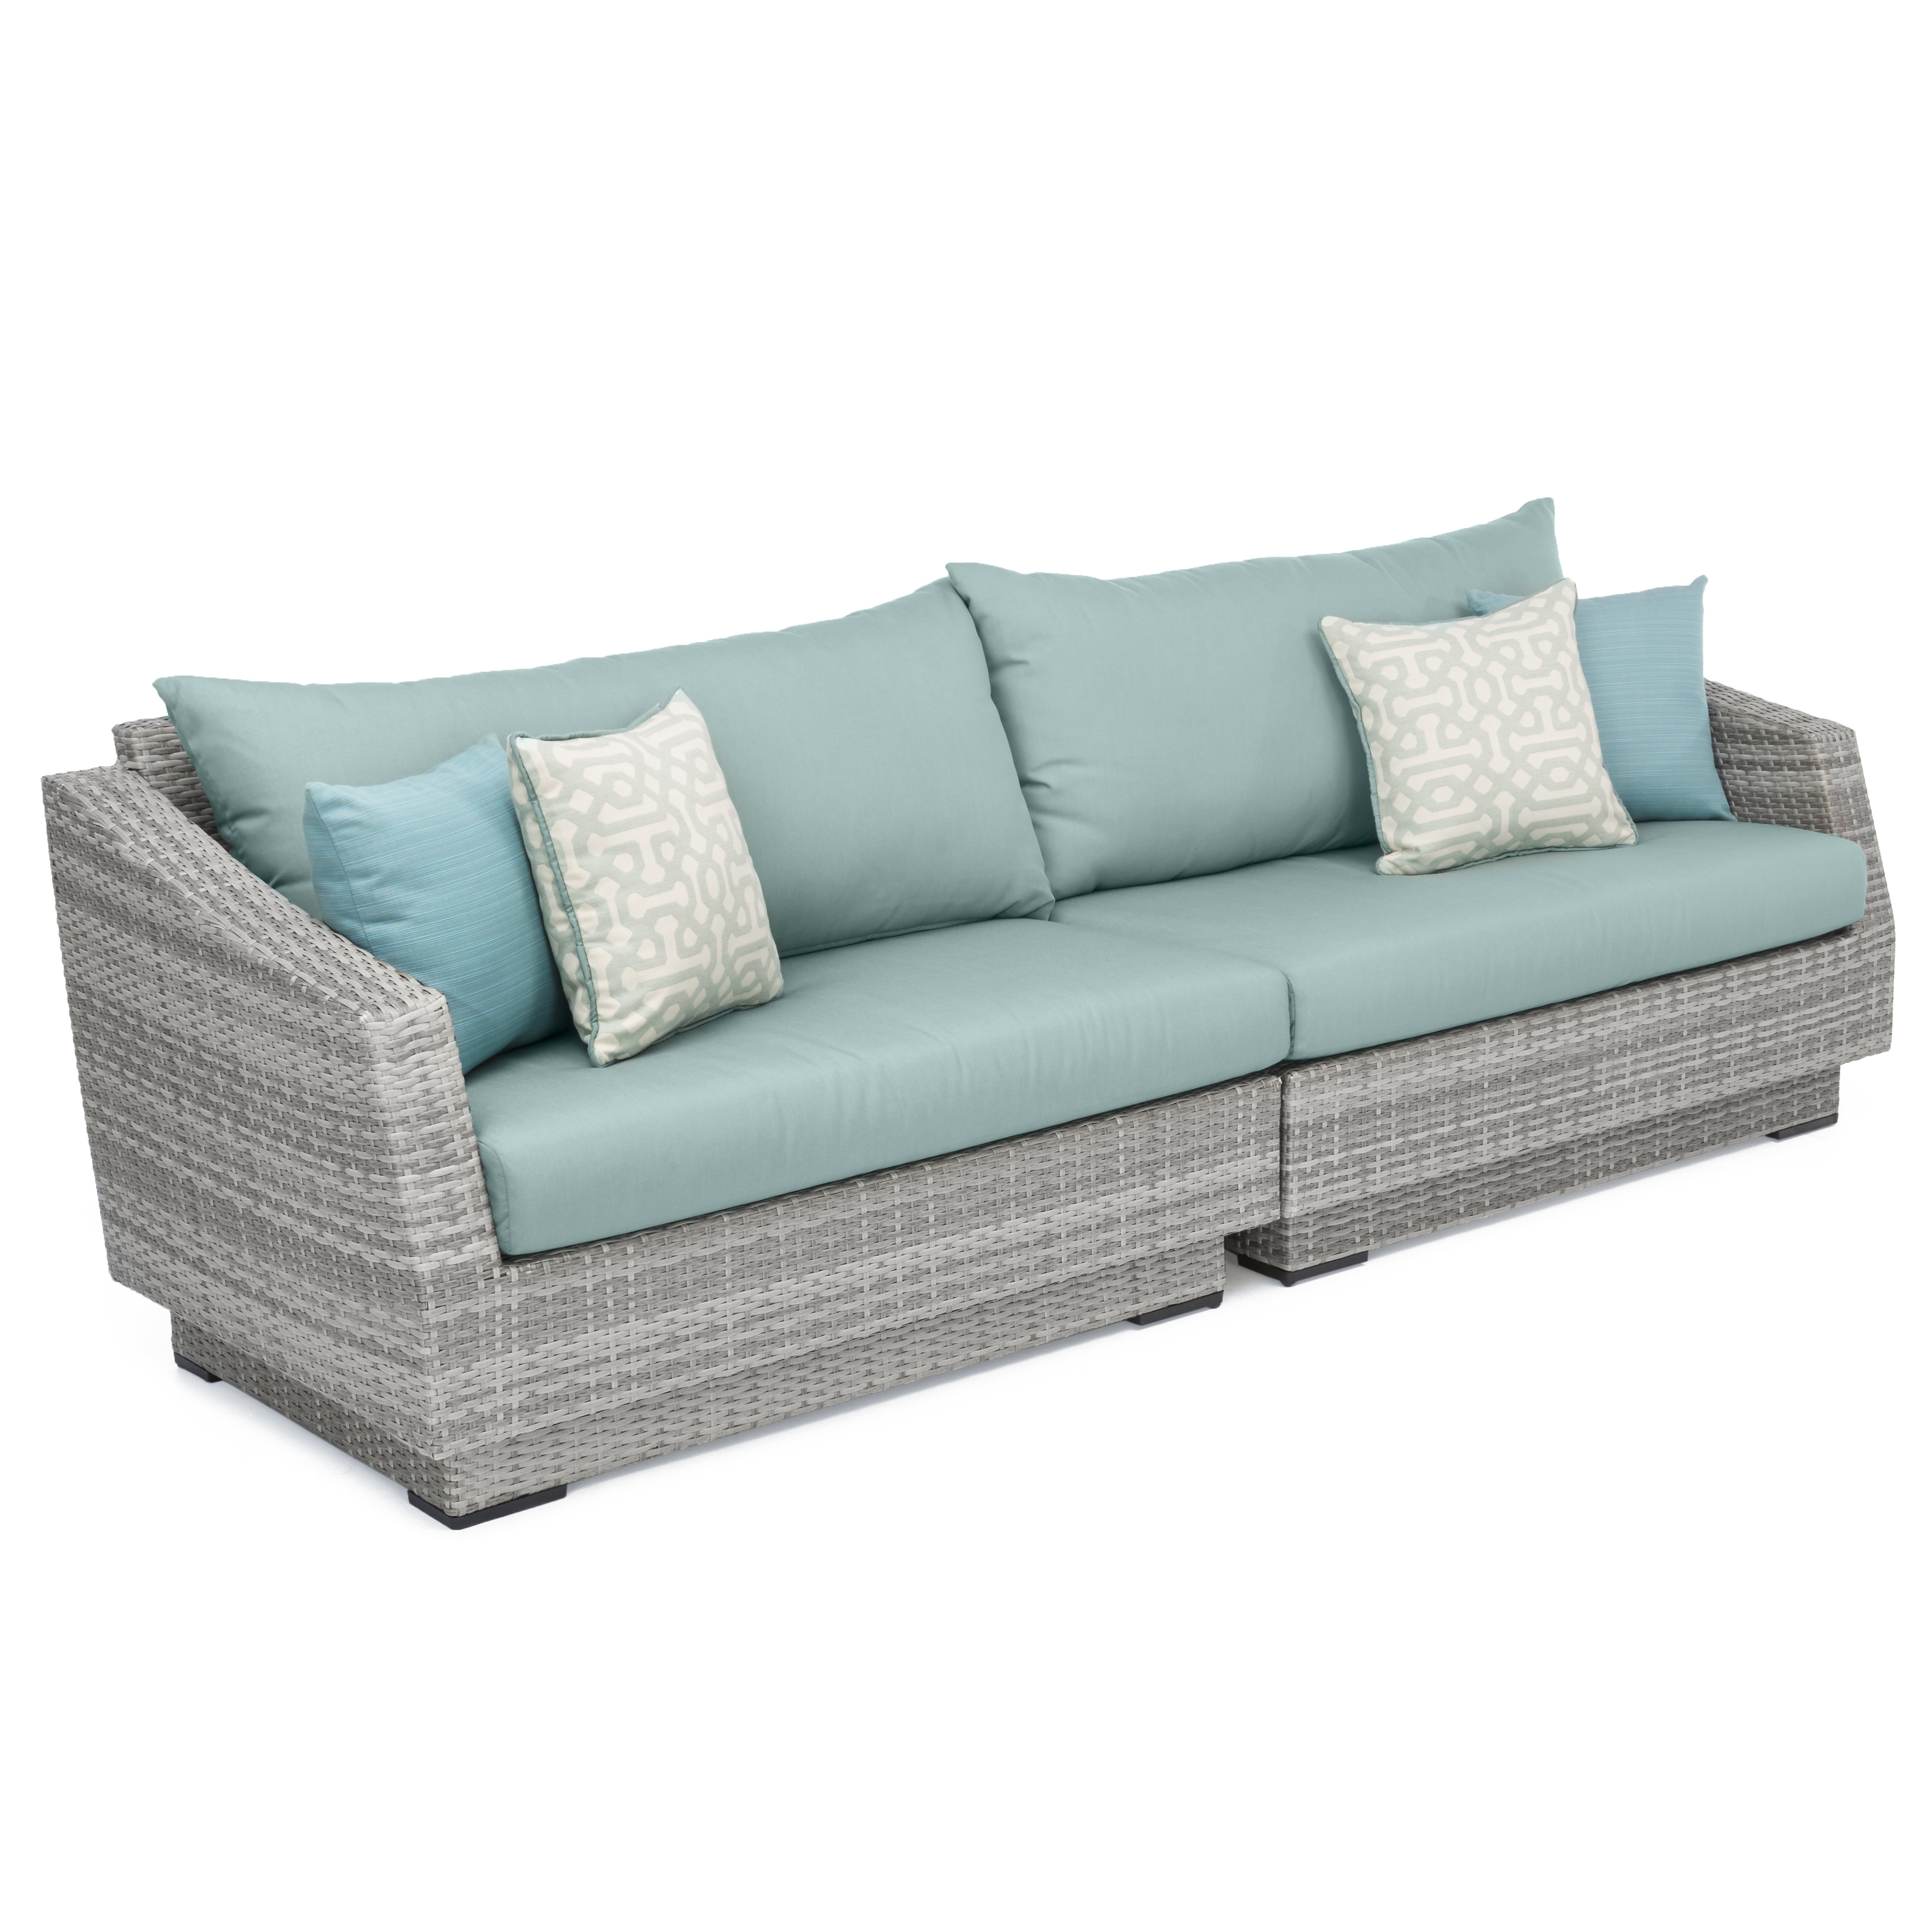 Widely Used Castelli Patio Sofa With Sunbrella Cushions For Castelli Patio Sofas With Sunbrella Cushions (View 20 of 20)